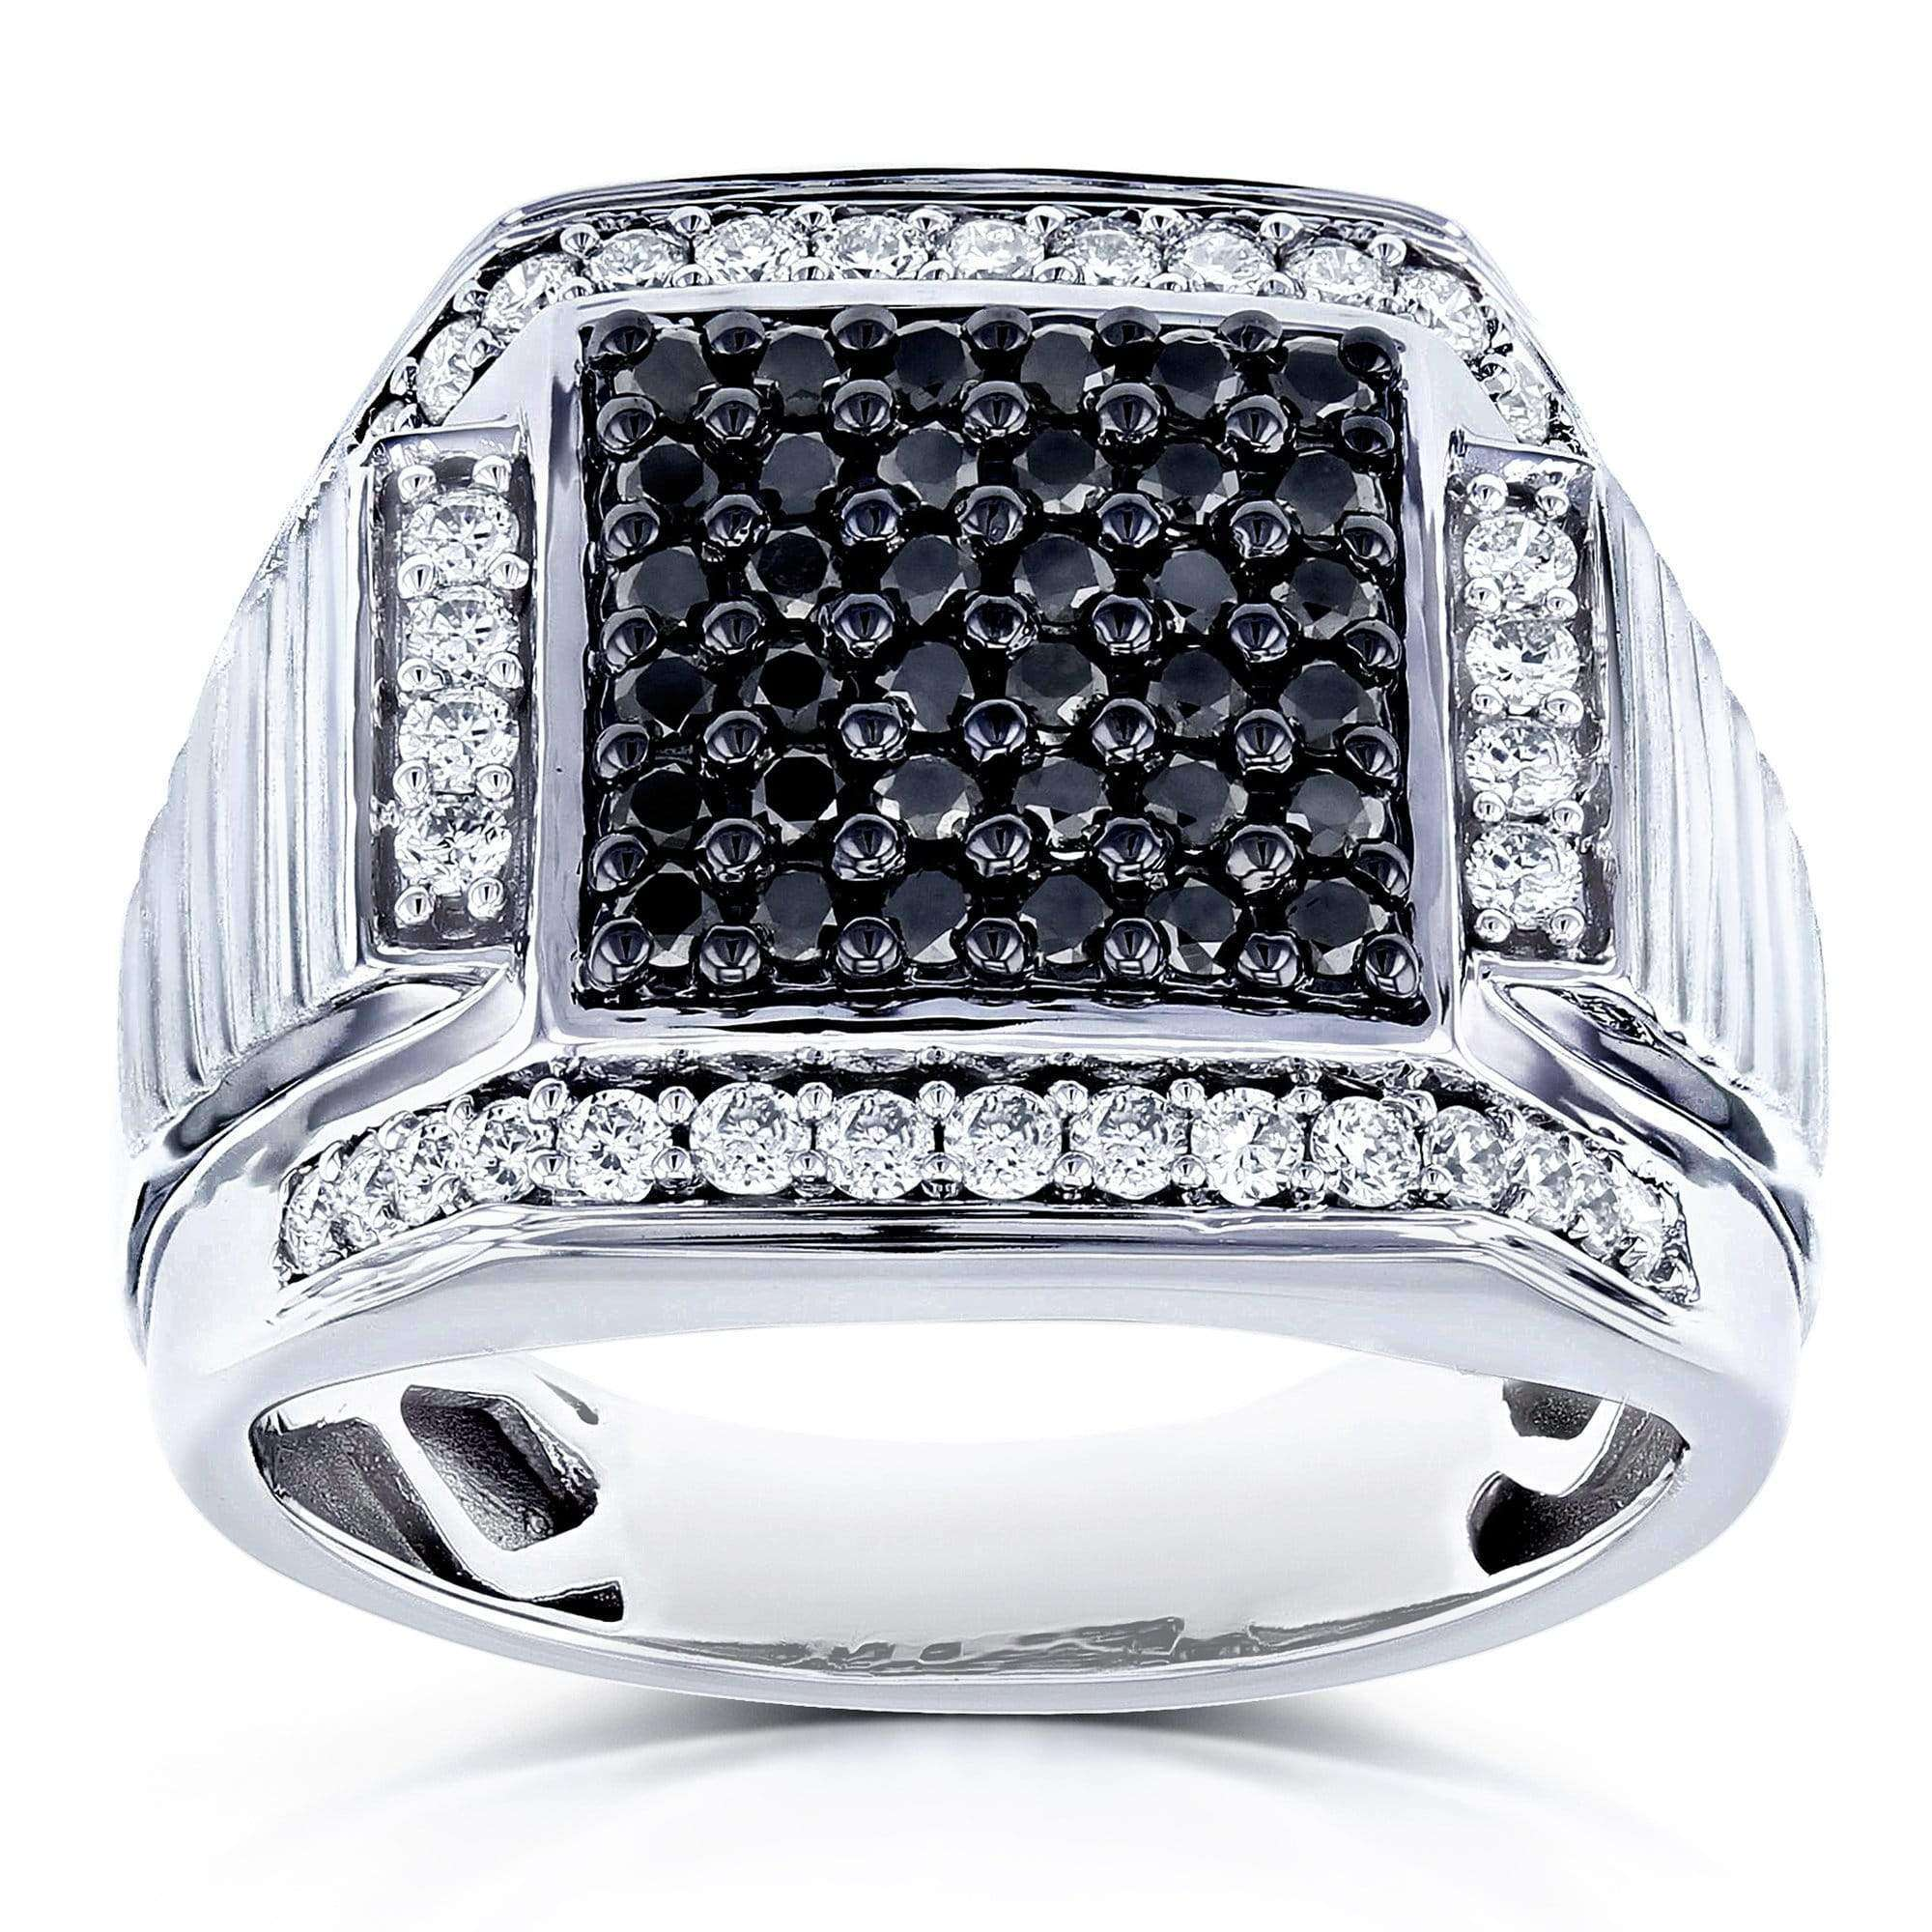 Cheap Mens Ring Square Black Diamond Pave 1 Carat (ctw) in 10k White Gold - 10